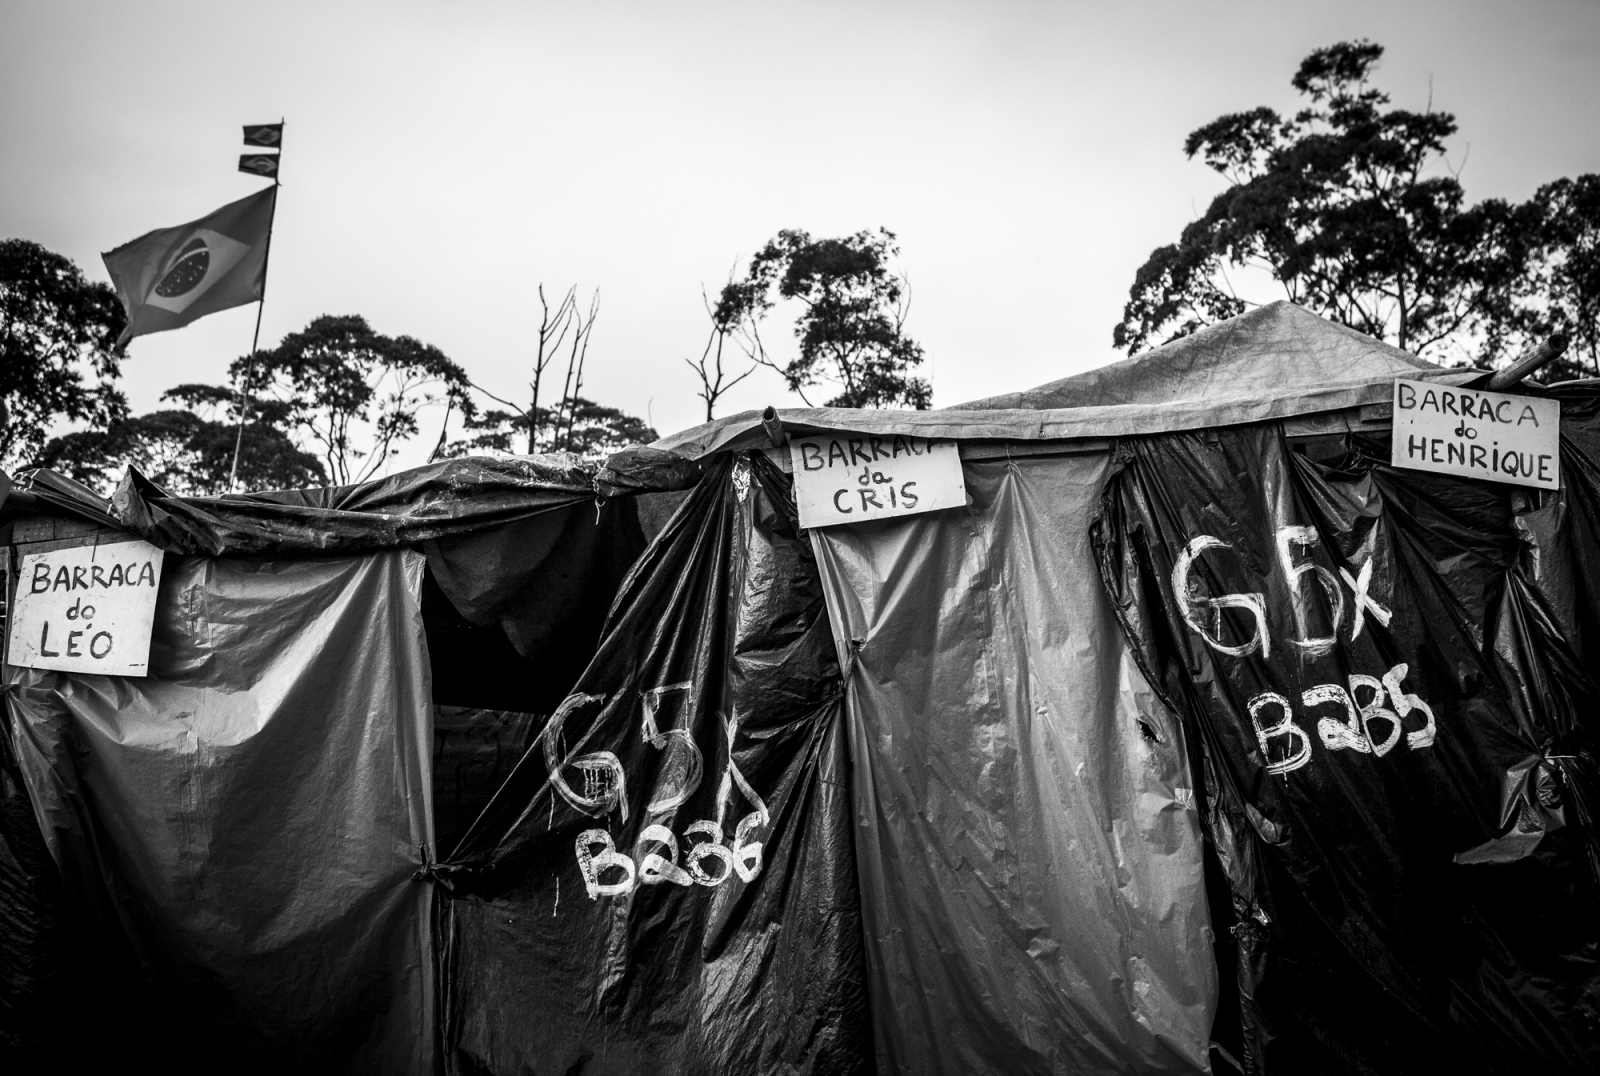 Tents in Copa do Povo (People's Cup) Camp in Itaquera, São Paulo, are organized by groups and have a respective number but people give the name of their family name to have a better felling of home. The Copa do Povo Camp, is just a few miles from the Arena Corinthians and has 5,000 homeless workers and their families occupied area of fifteen acres. They are homeless after rents skyrocketed because of the World Cup.